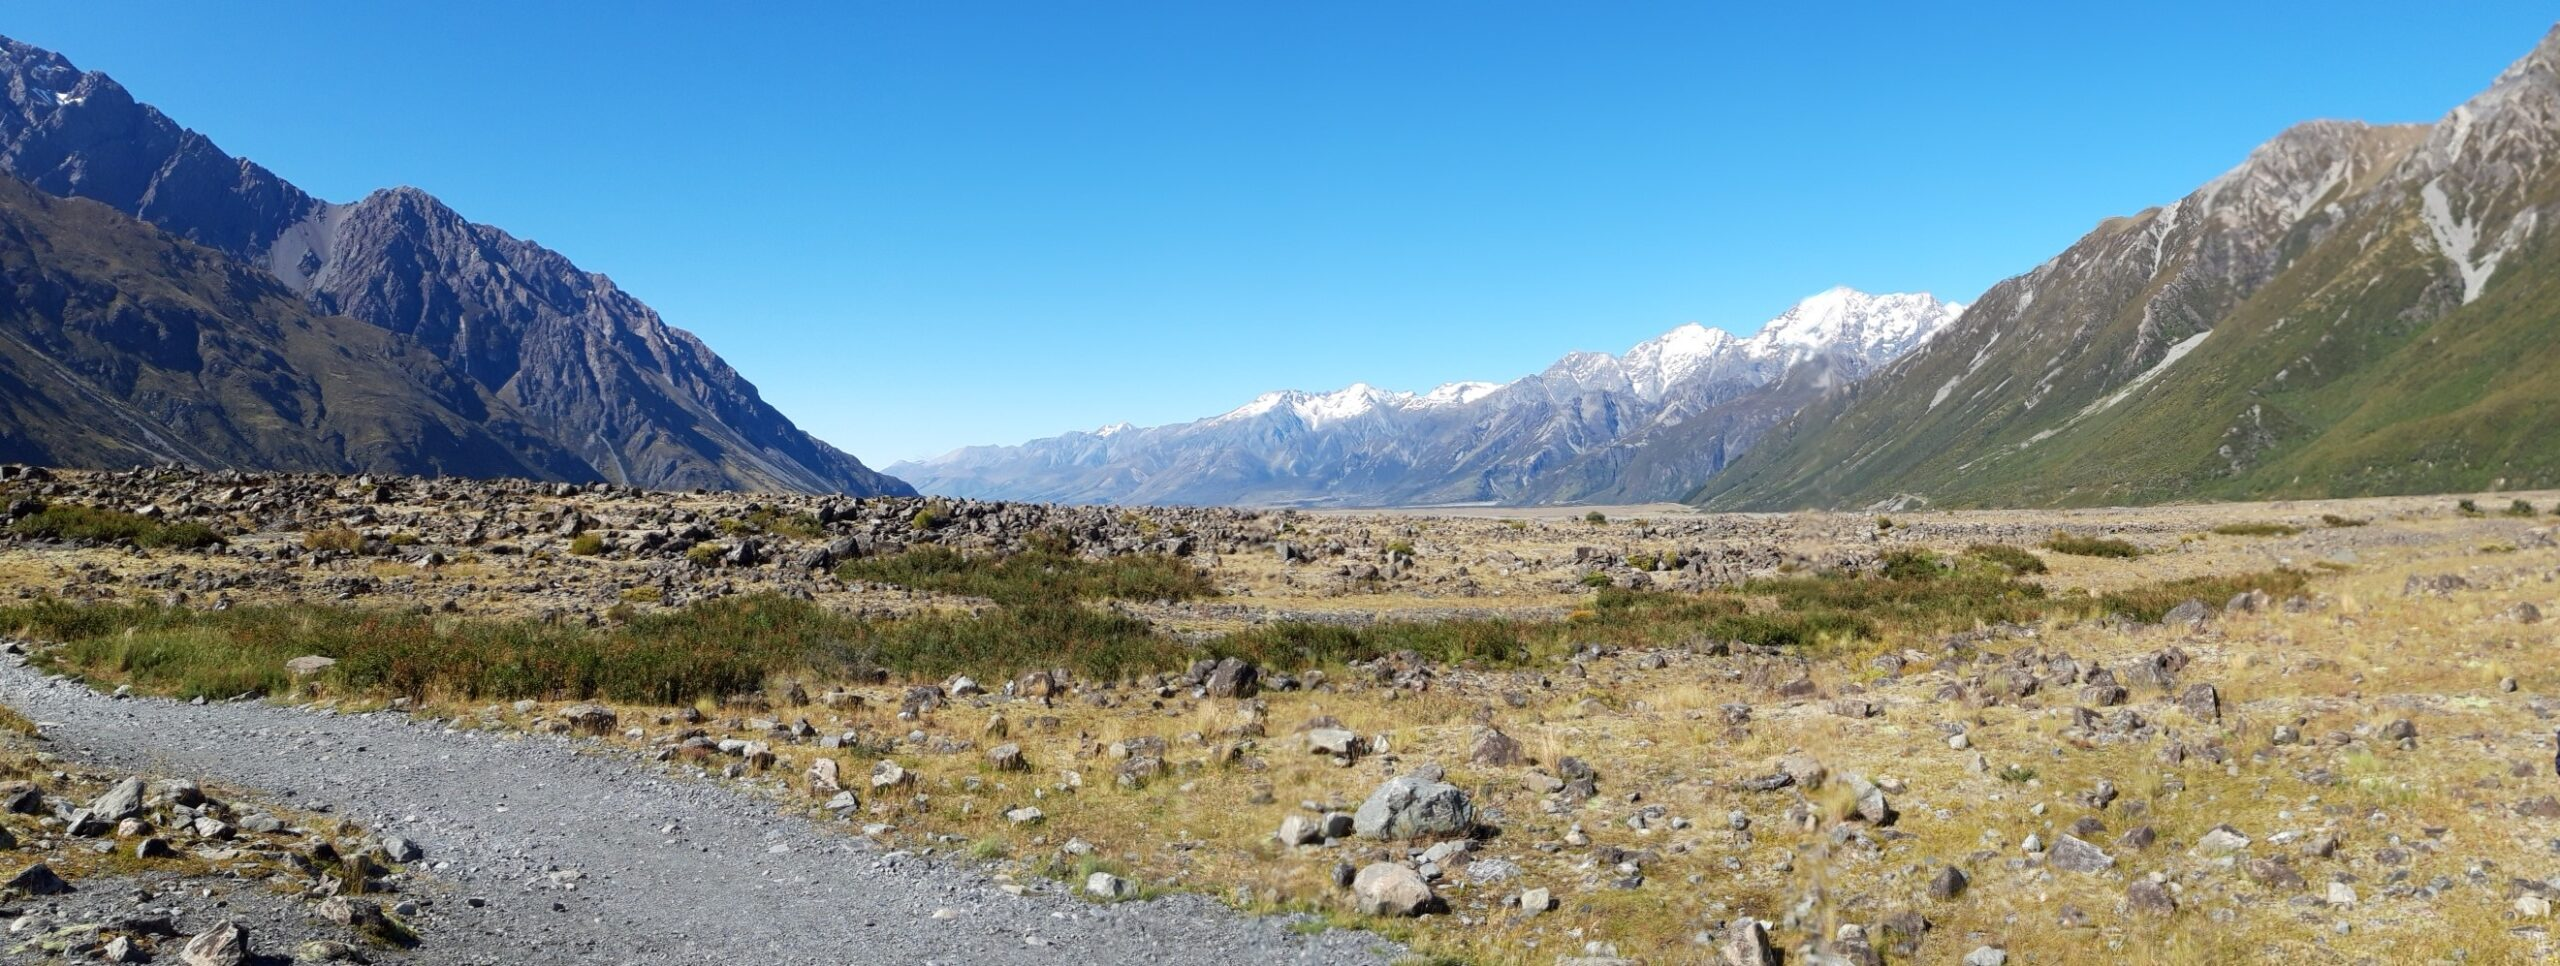 20191228_100357 (2) - Neuseeland - Canterbury (NZ) - Mount Cook Village (NZ) - Panoramablick - Tasman Valley Tal - Burnett Mountains Bergkette  - Ben Ohau Bergkette  - bewaldete Berghänge  - Mt. Cook Range Bergkette - schneebedeckter Berggipfel